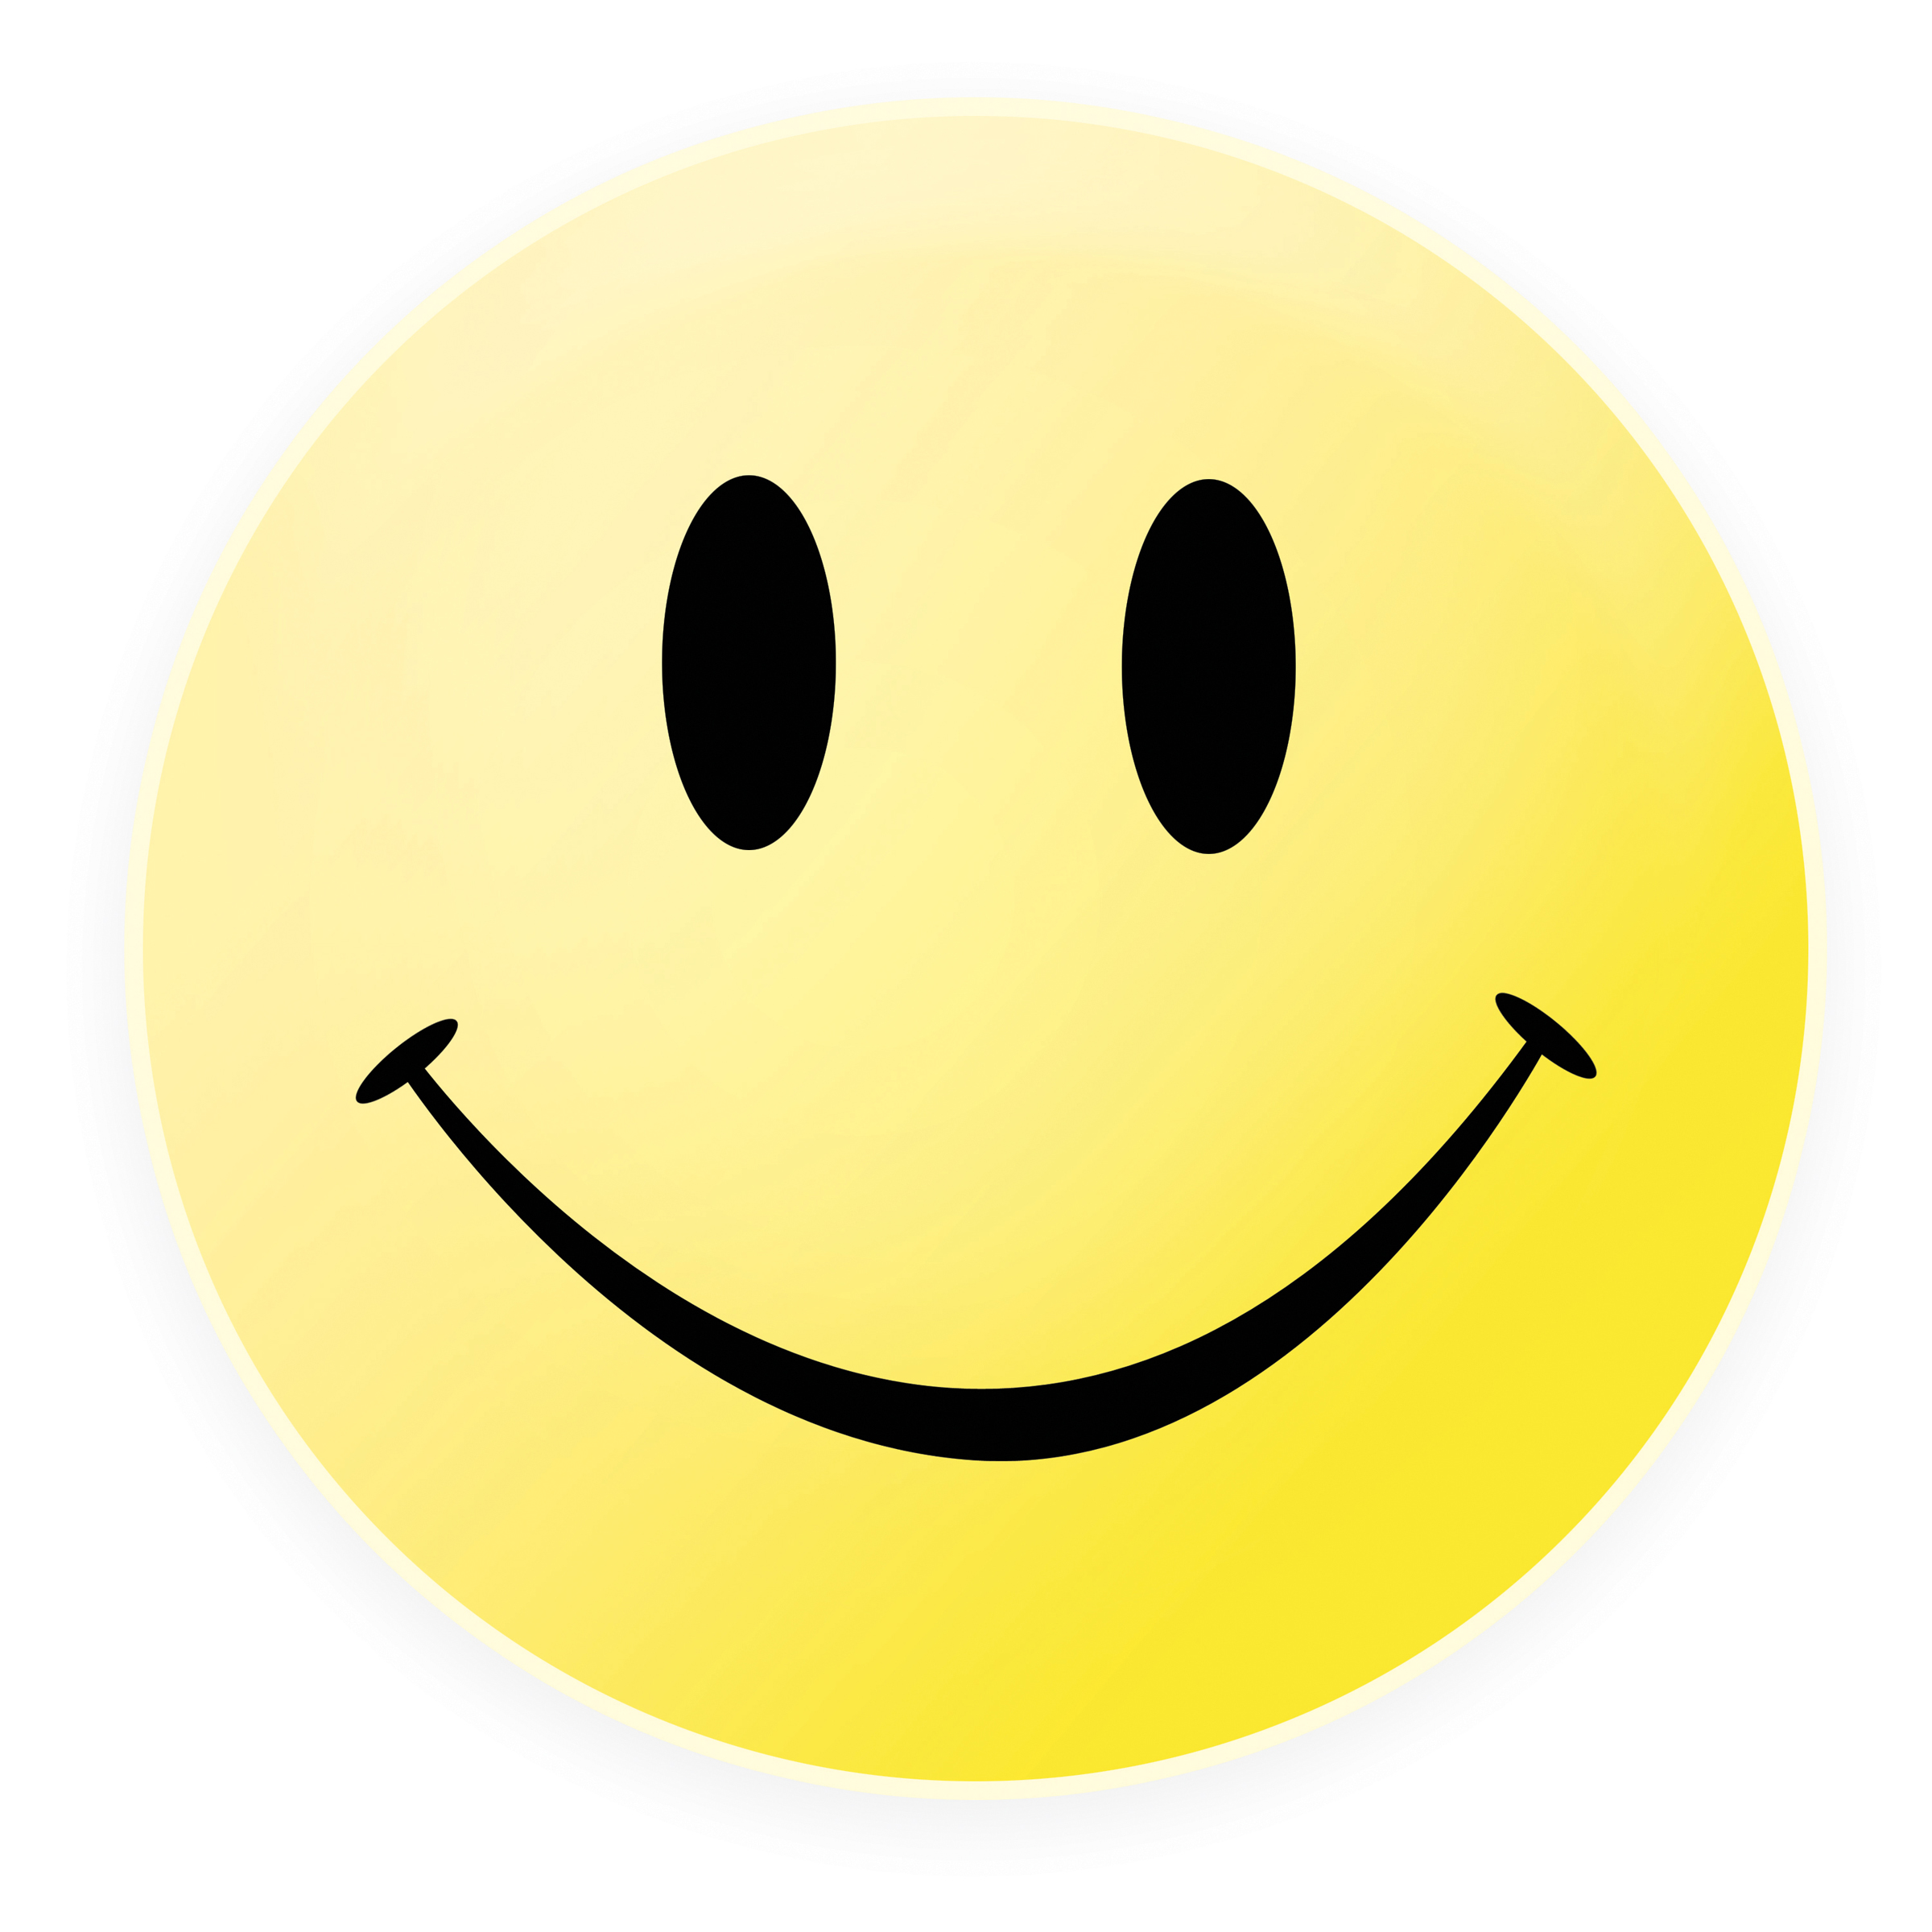 Giggling Smiley Pictures of happy smiley faces Giggle Clipart